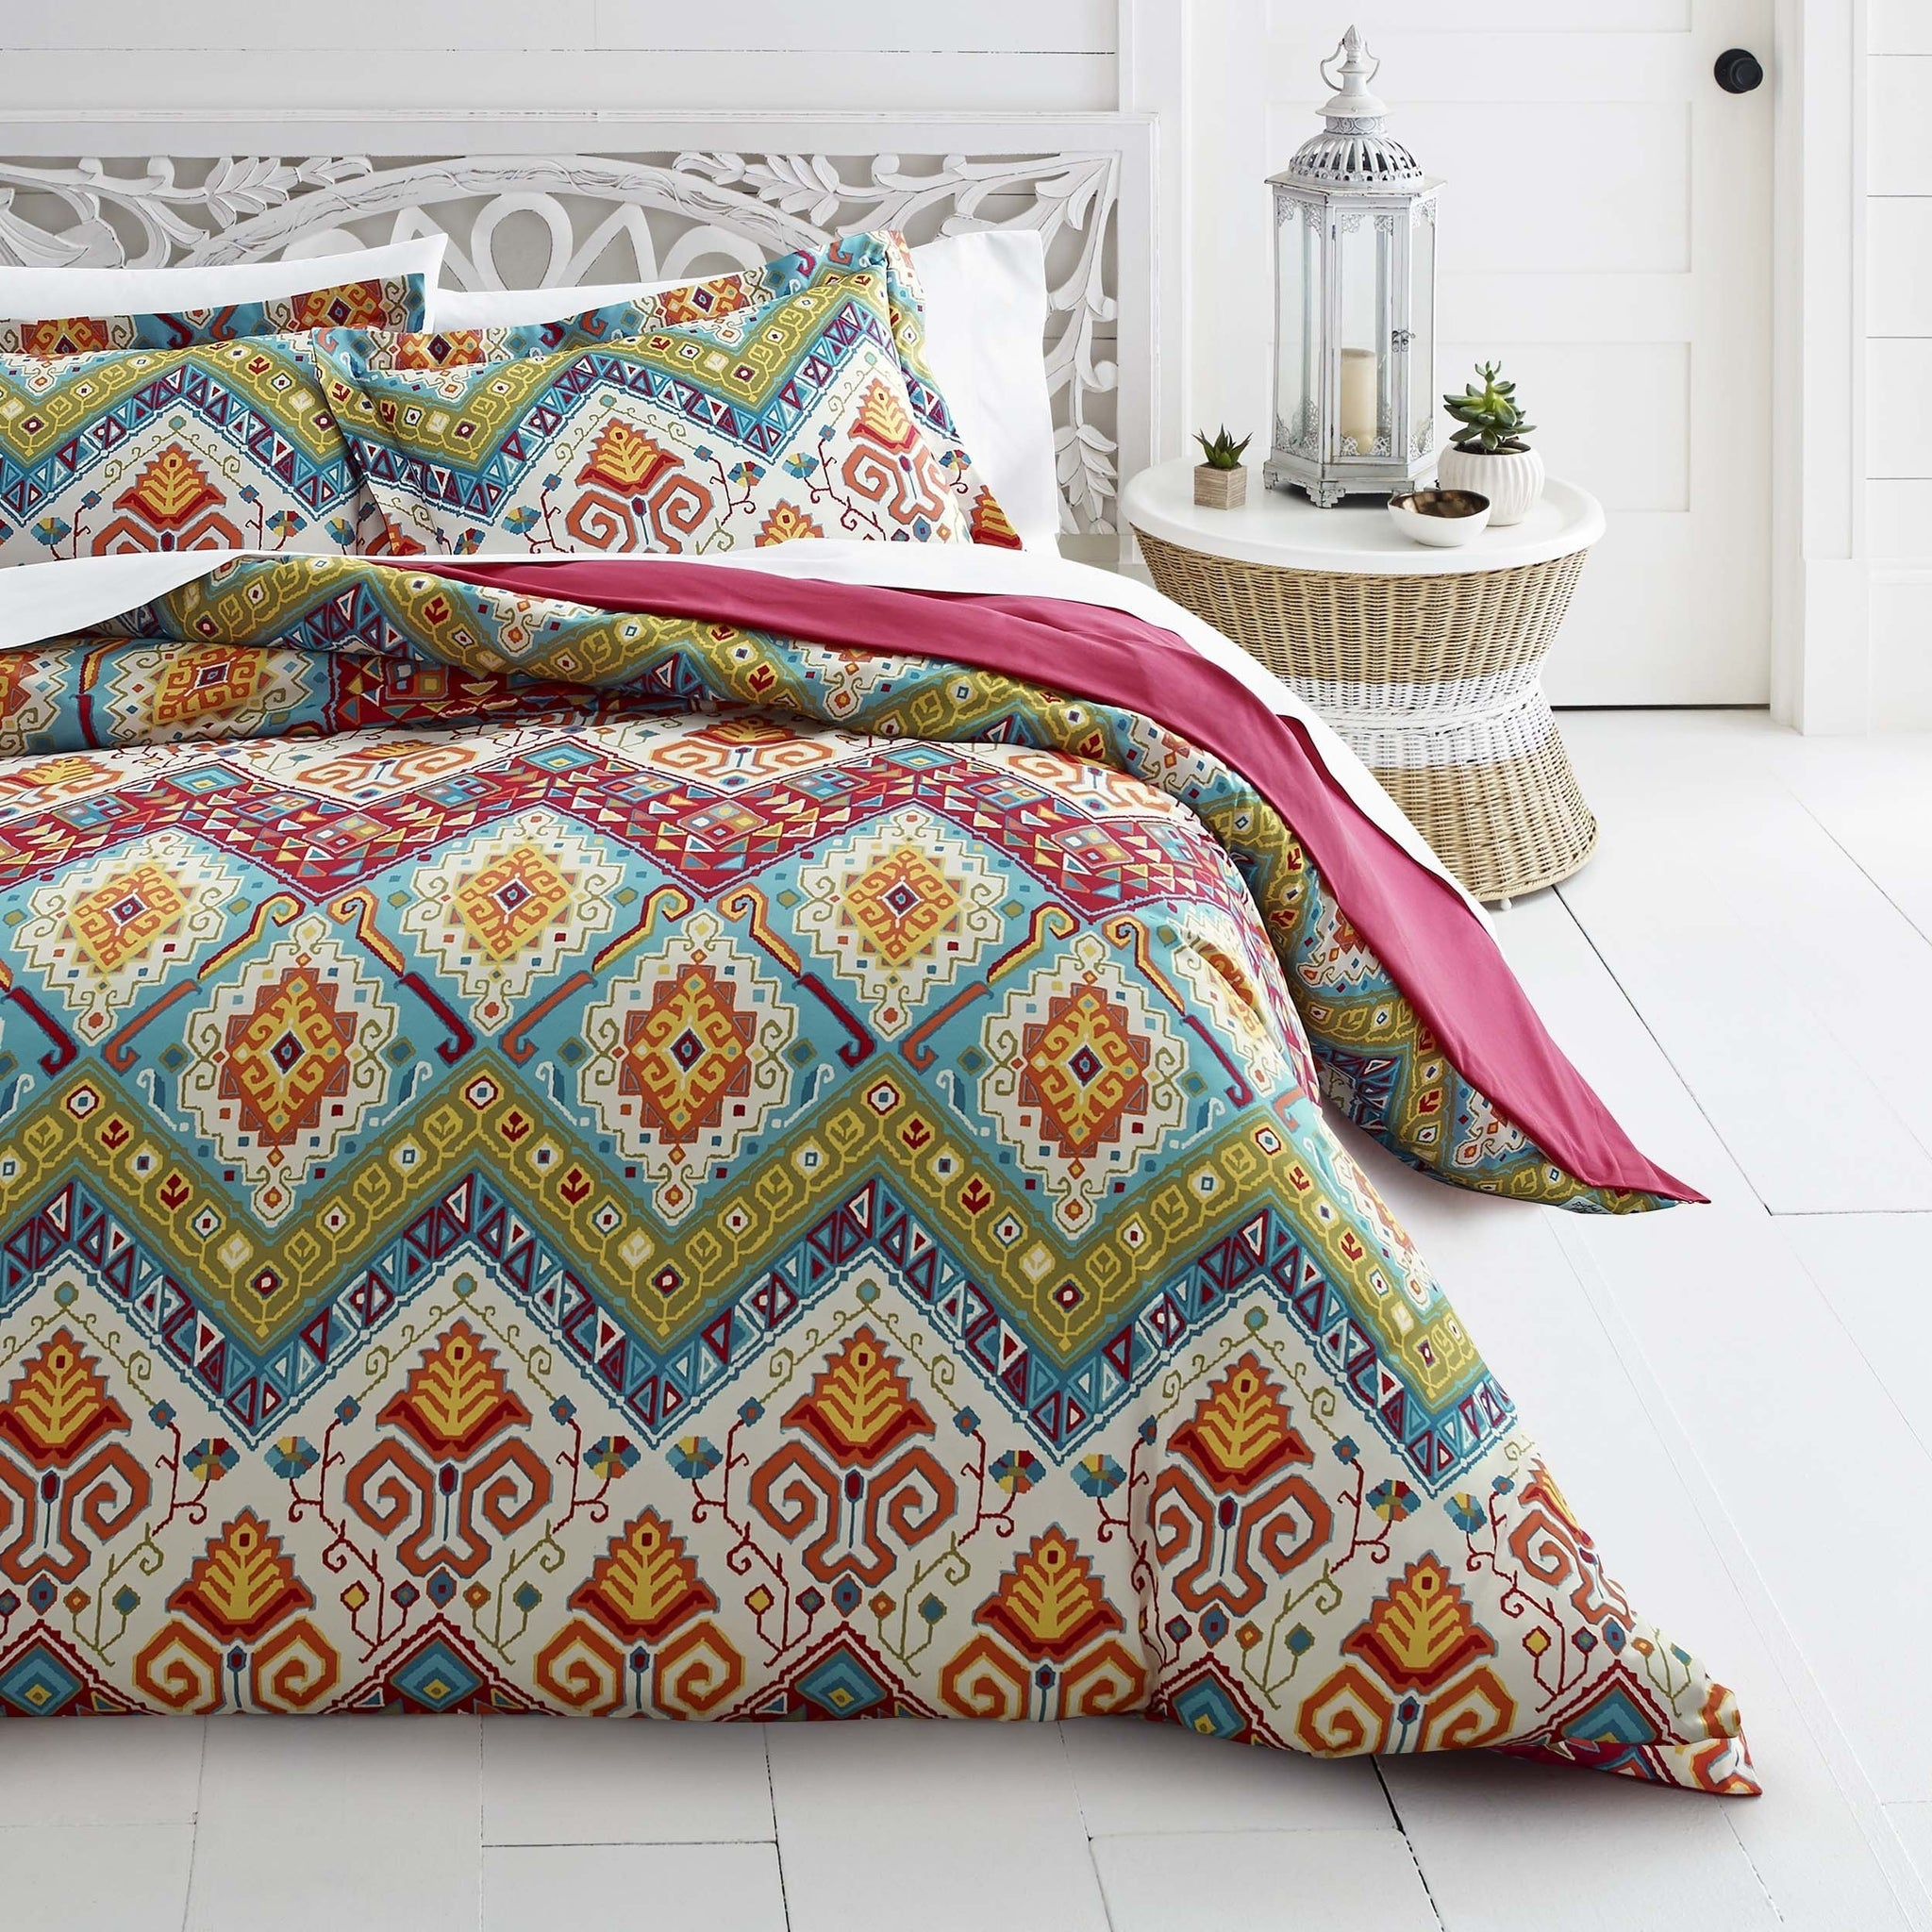 cover set comforter boho cotton king hp indian mandala bedding covers quilt decor size duvet doona